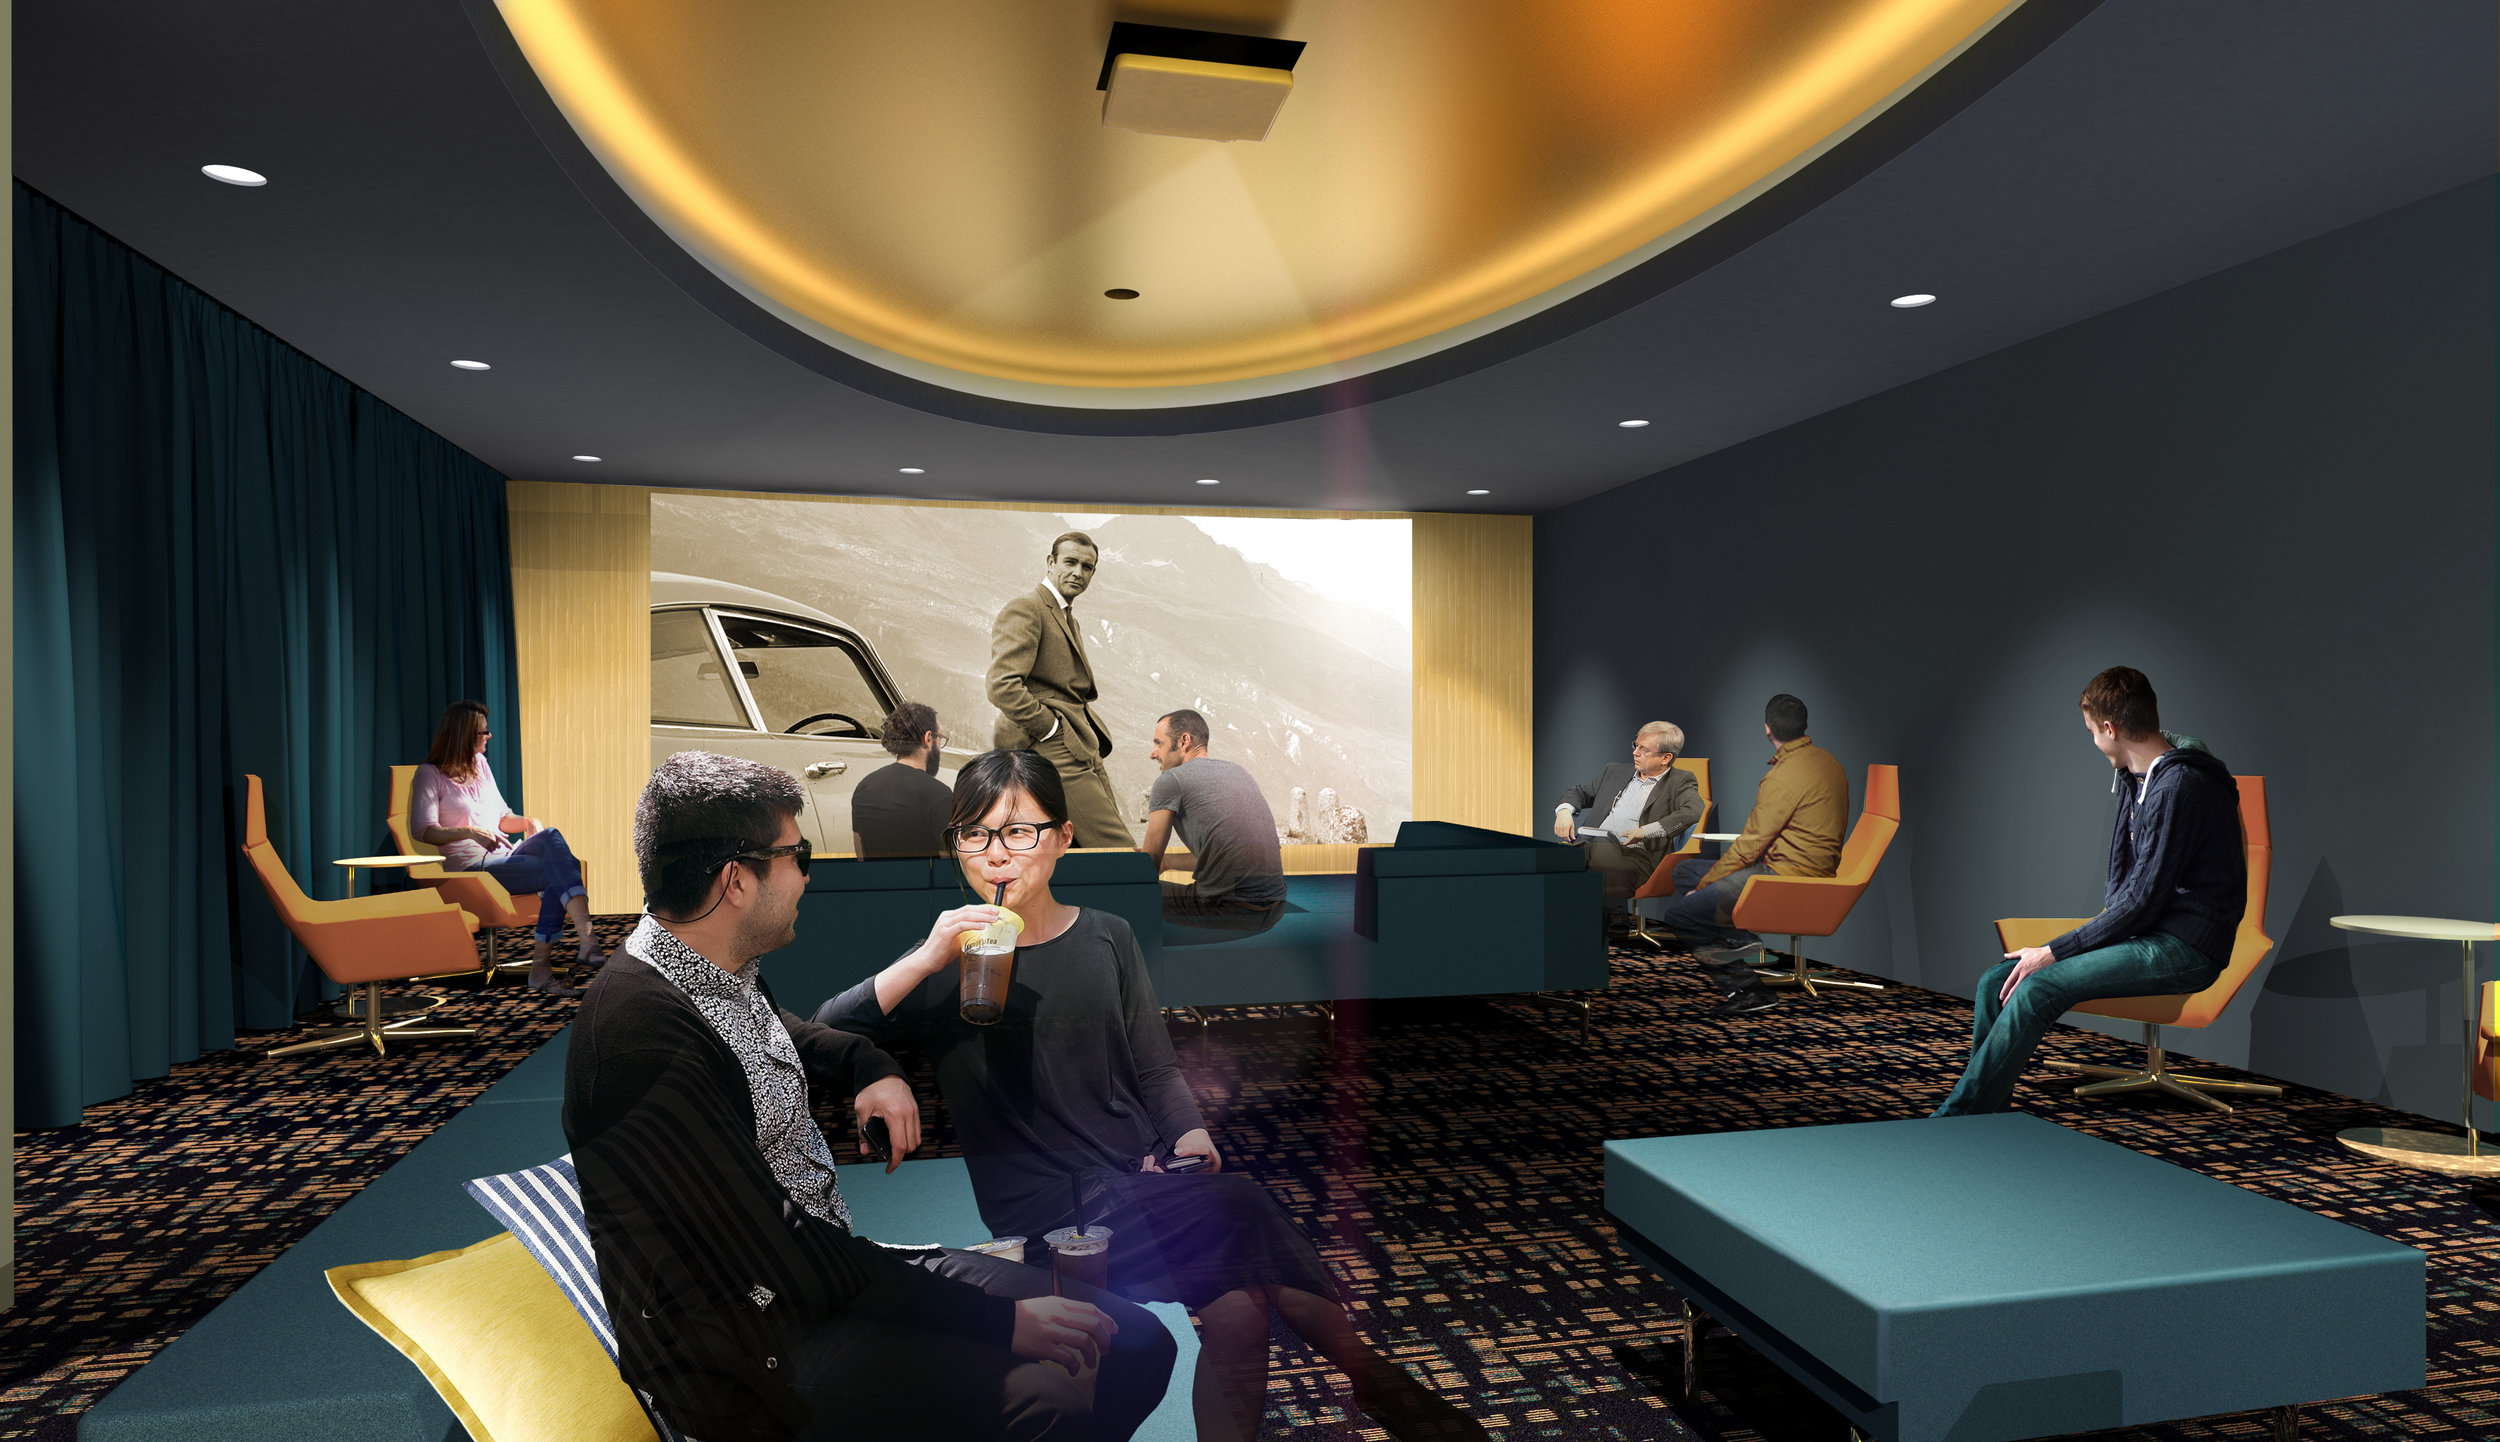 Residents will have access to a HD movie theater on the building's 17th floor.